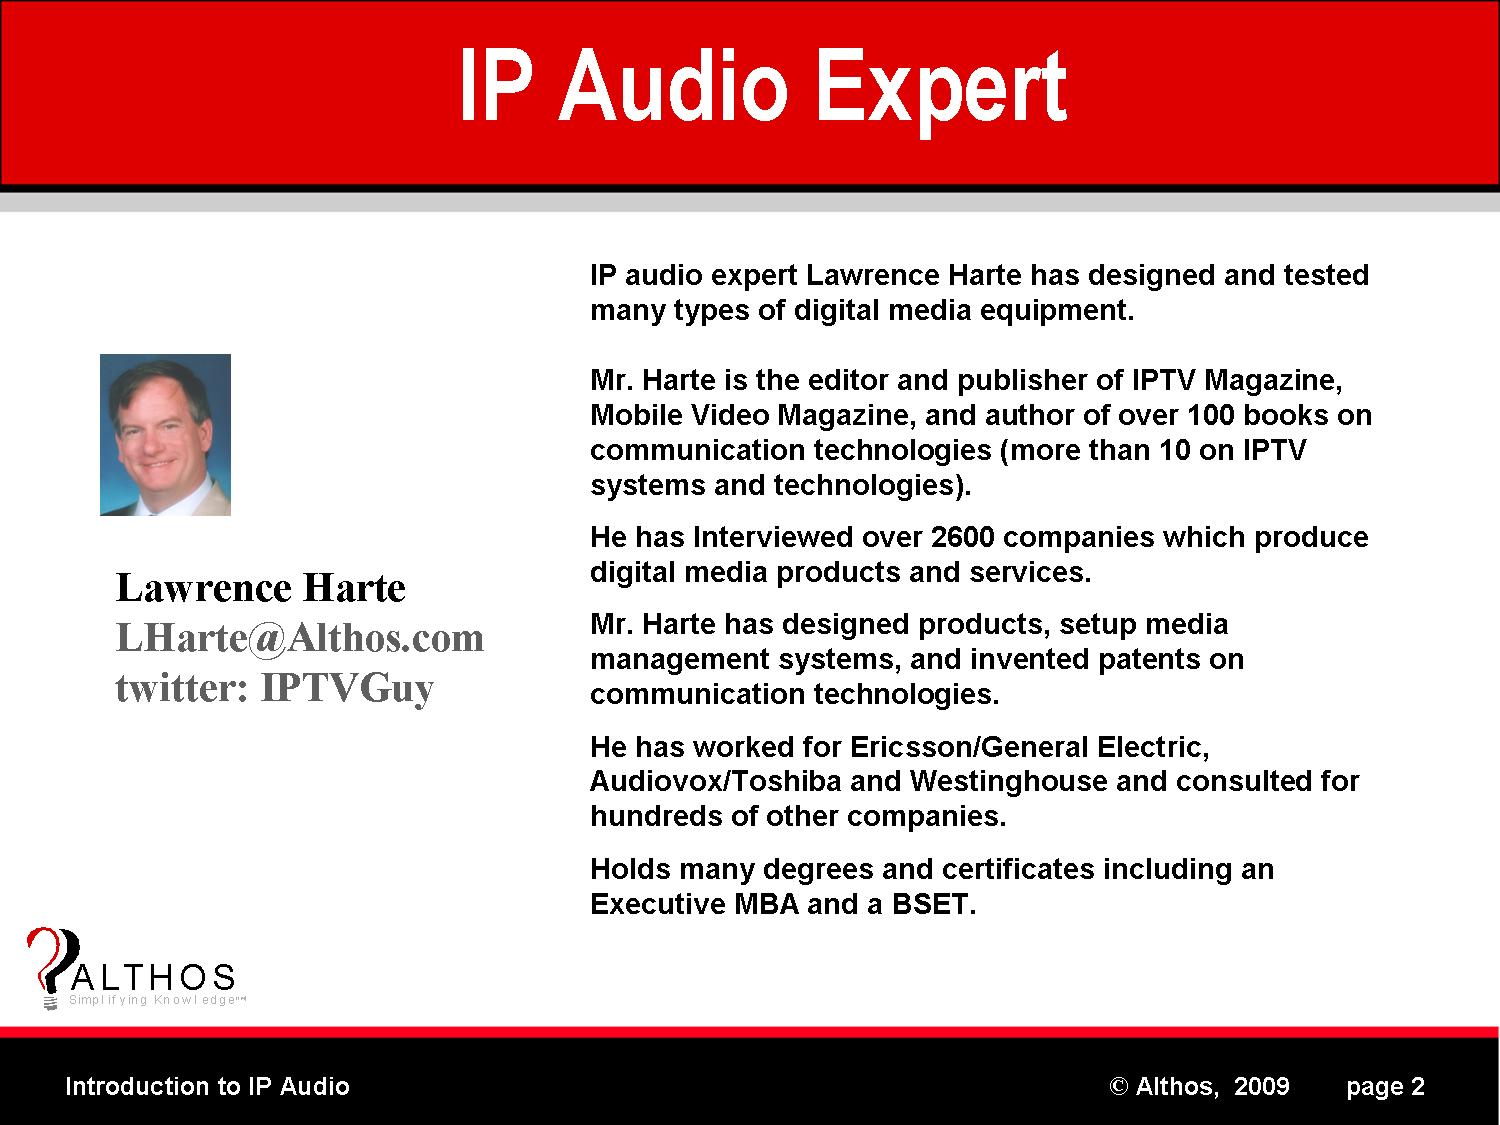 IP Audio Expert Lawrence Harte image